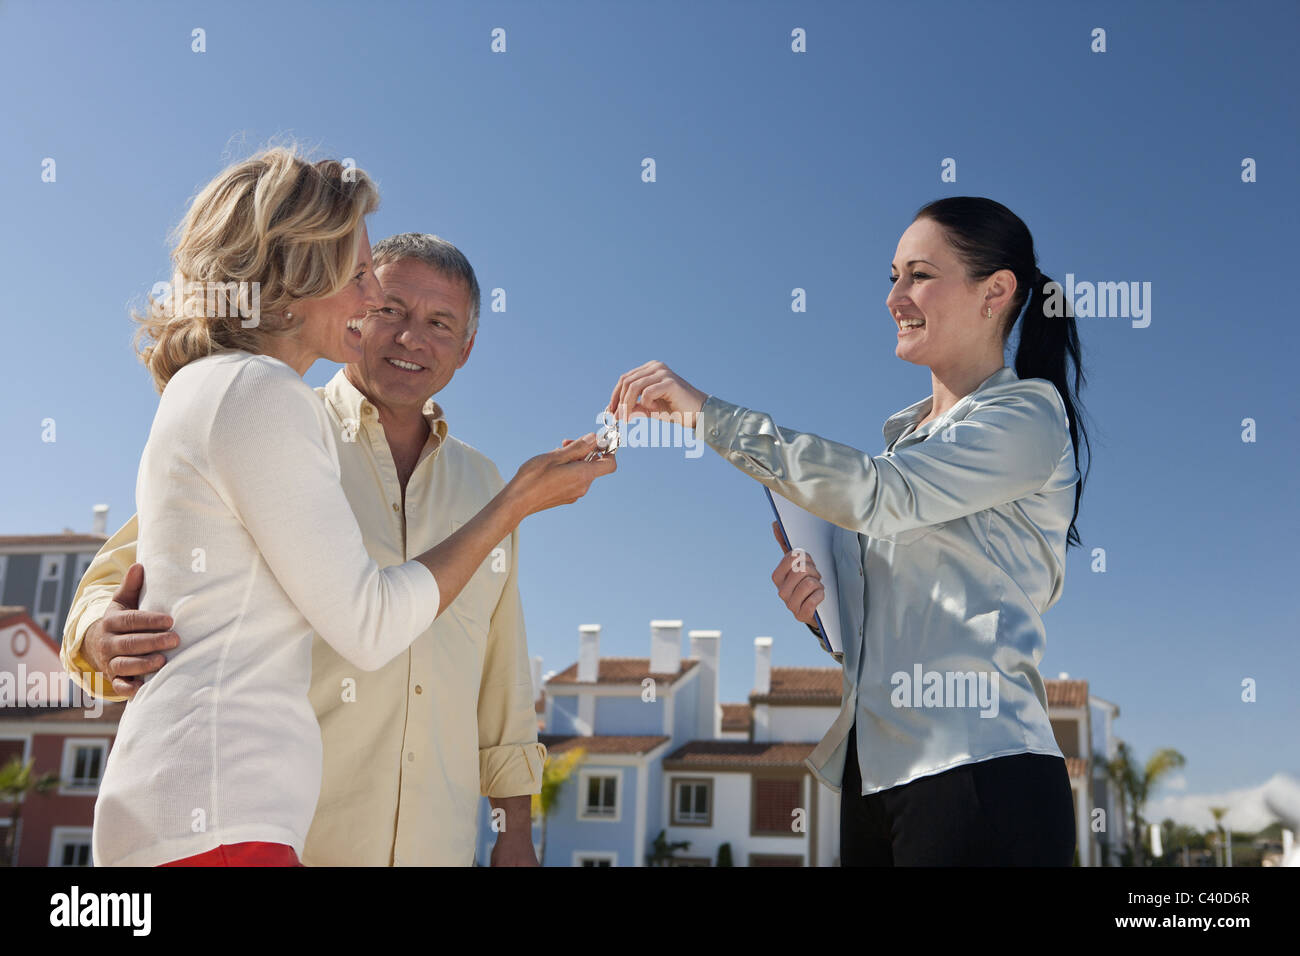 Realestate agent handing keys to couple - Stock Image